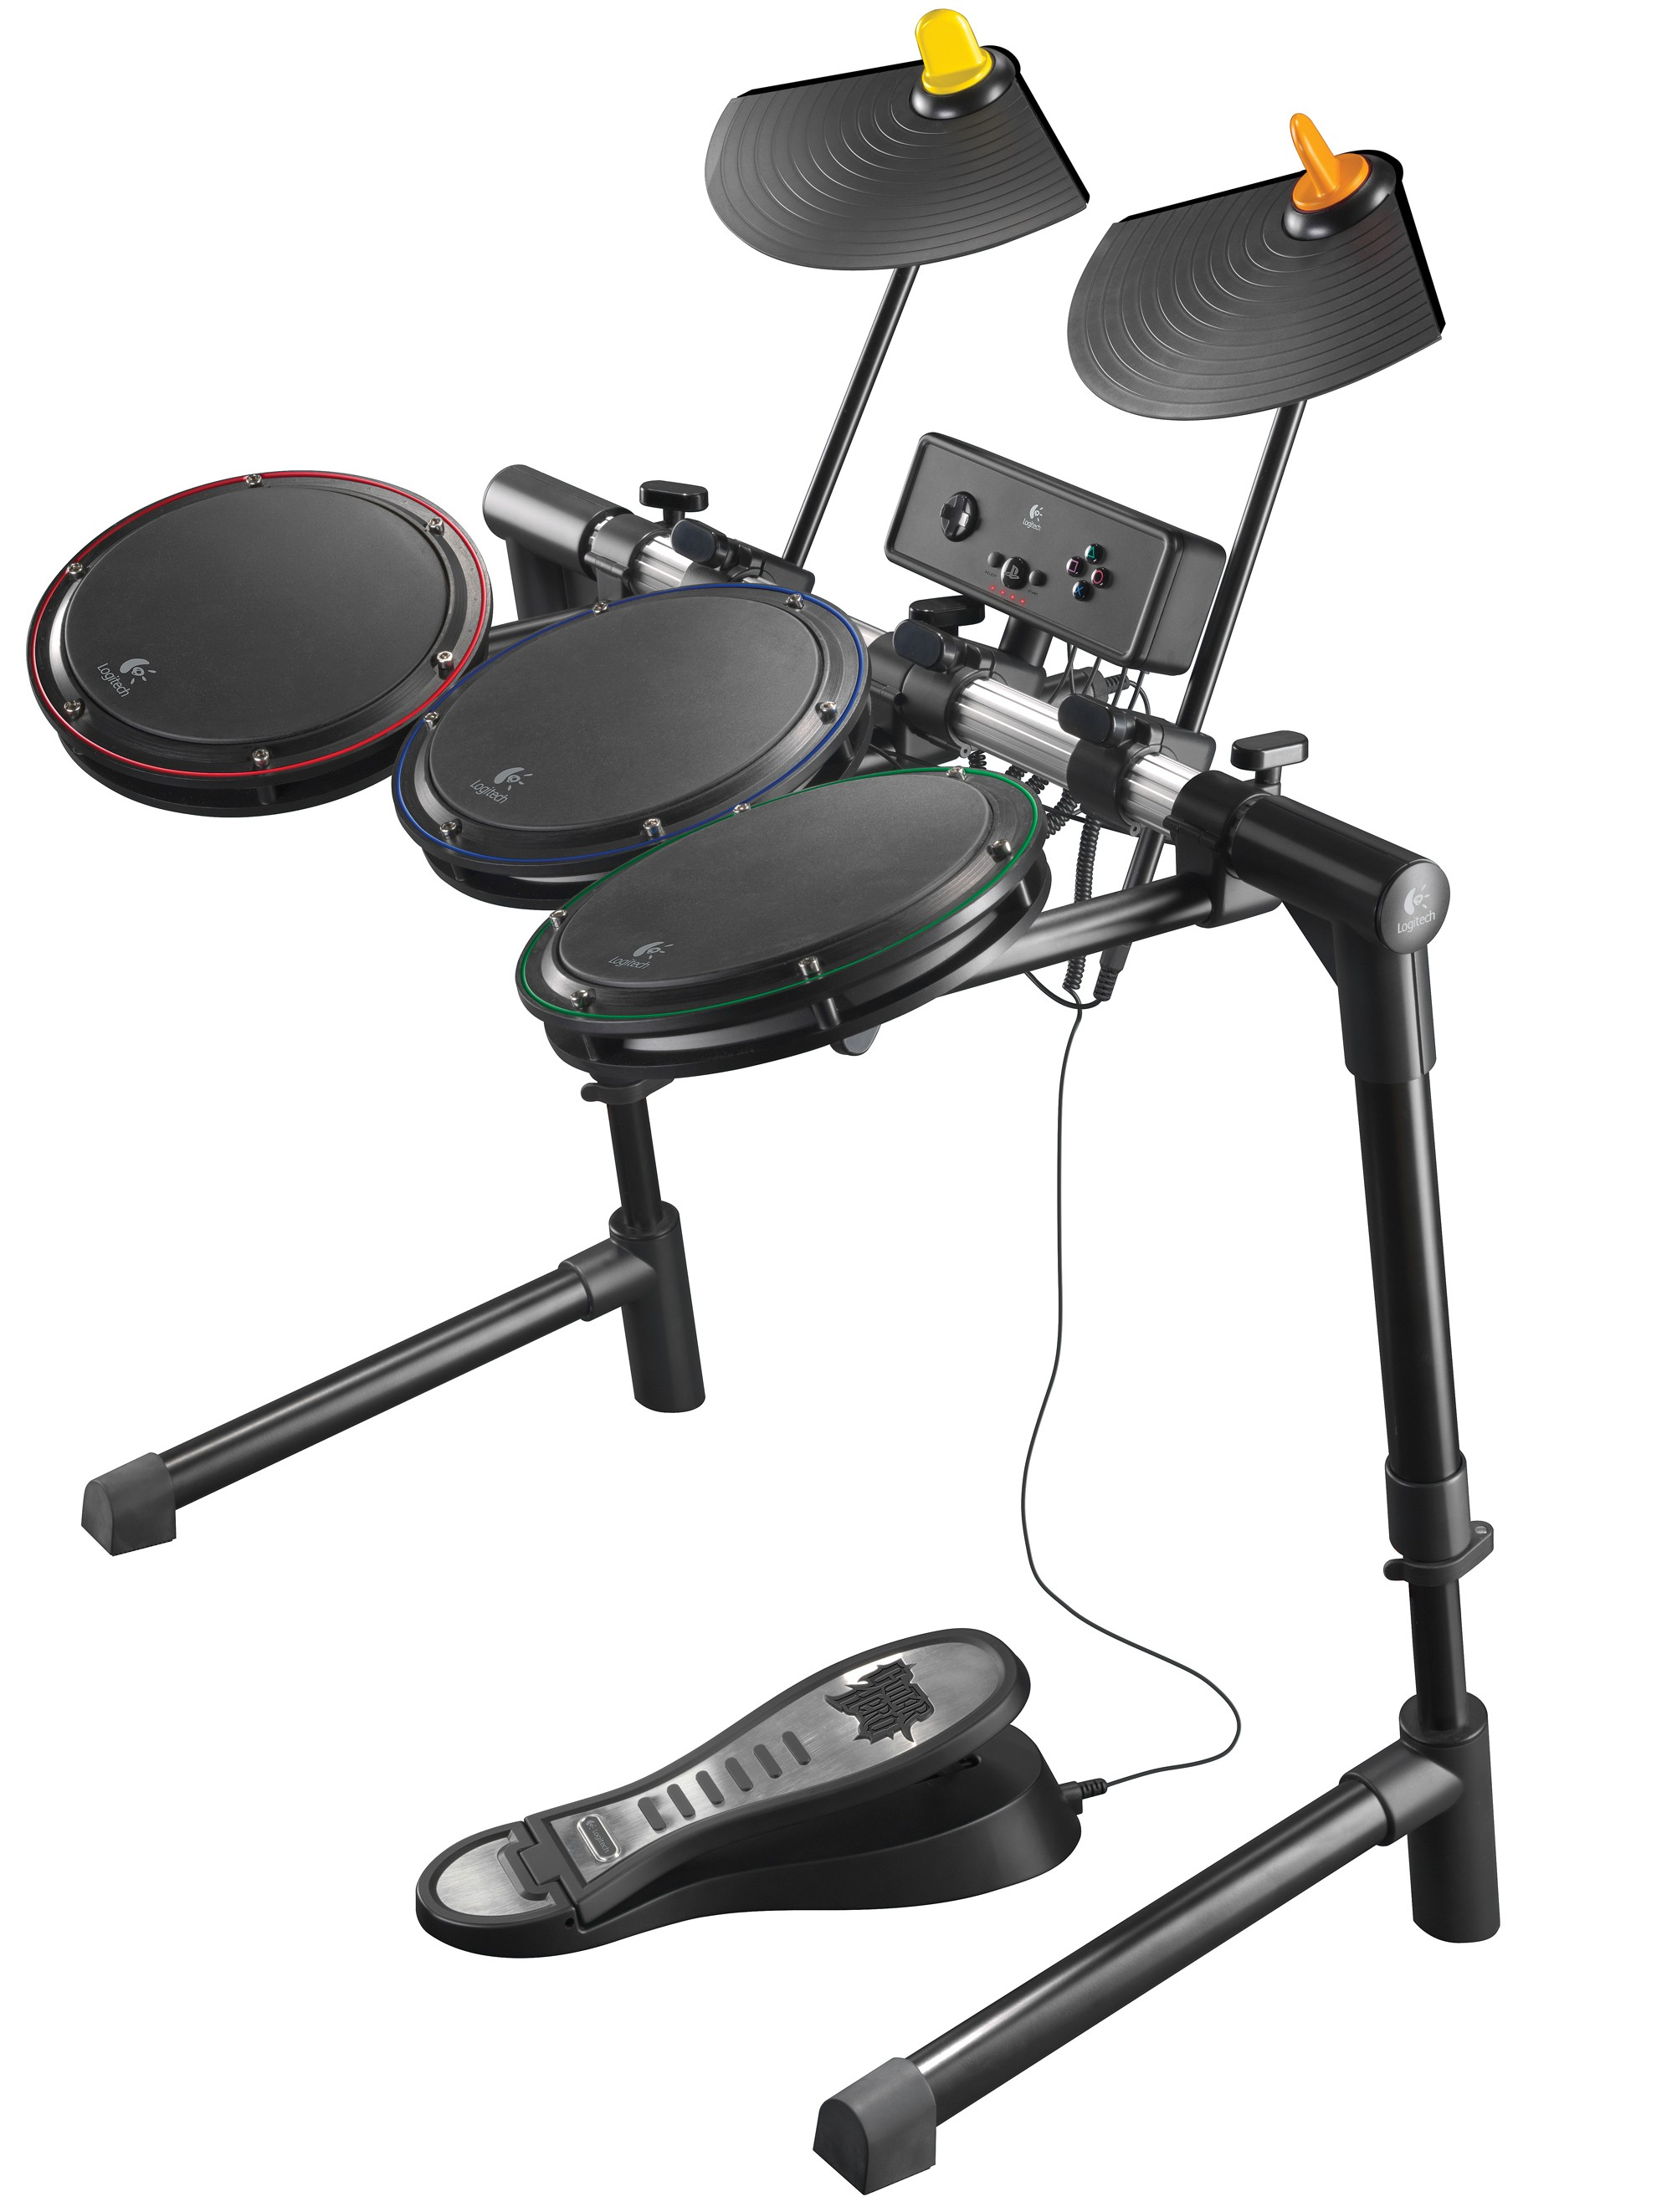 Logitech Wireless Drum Controller for PS3